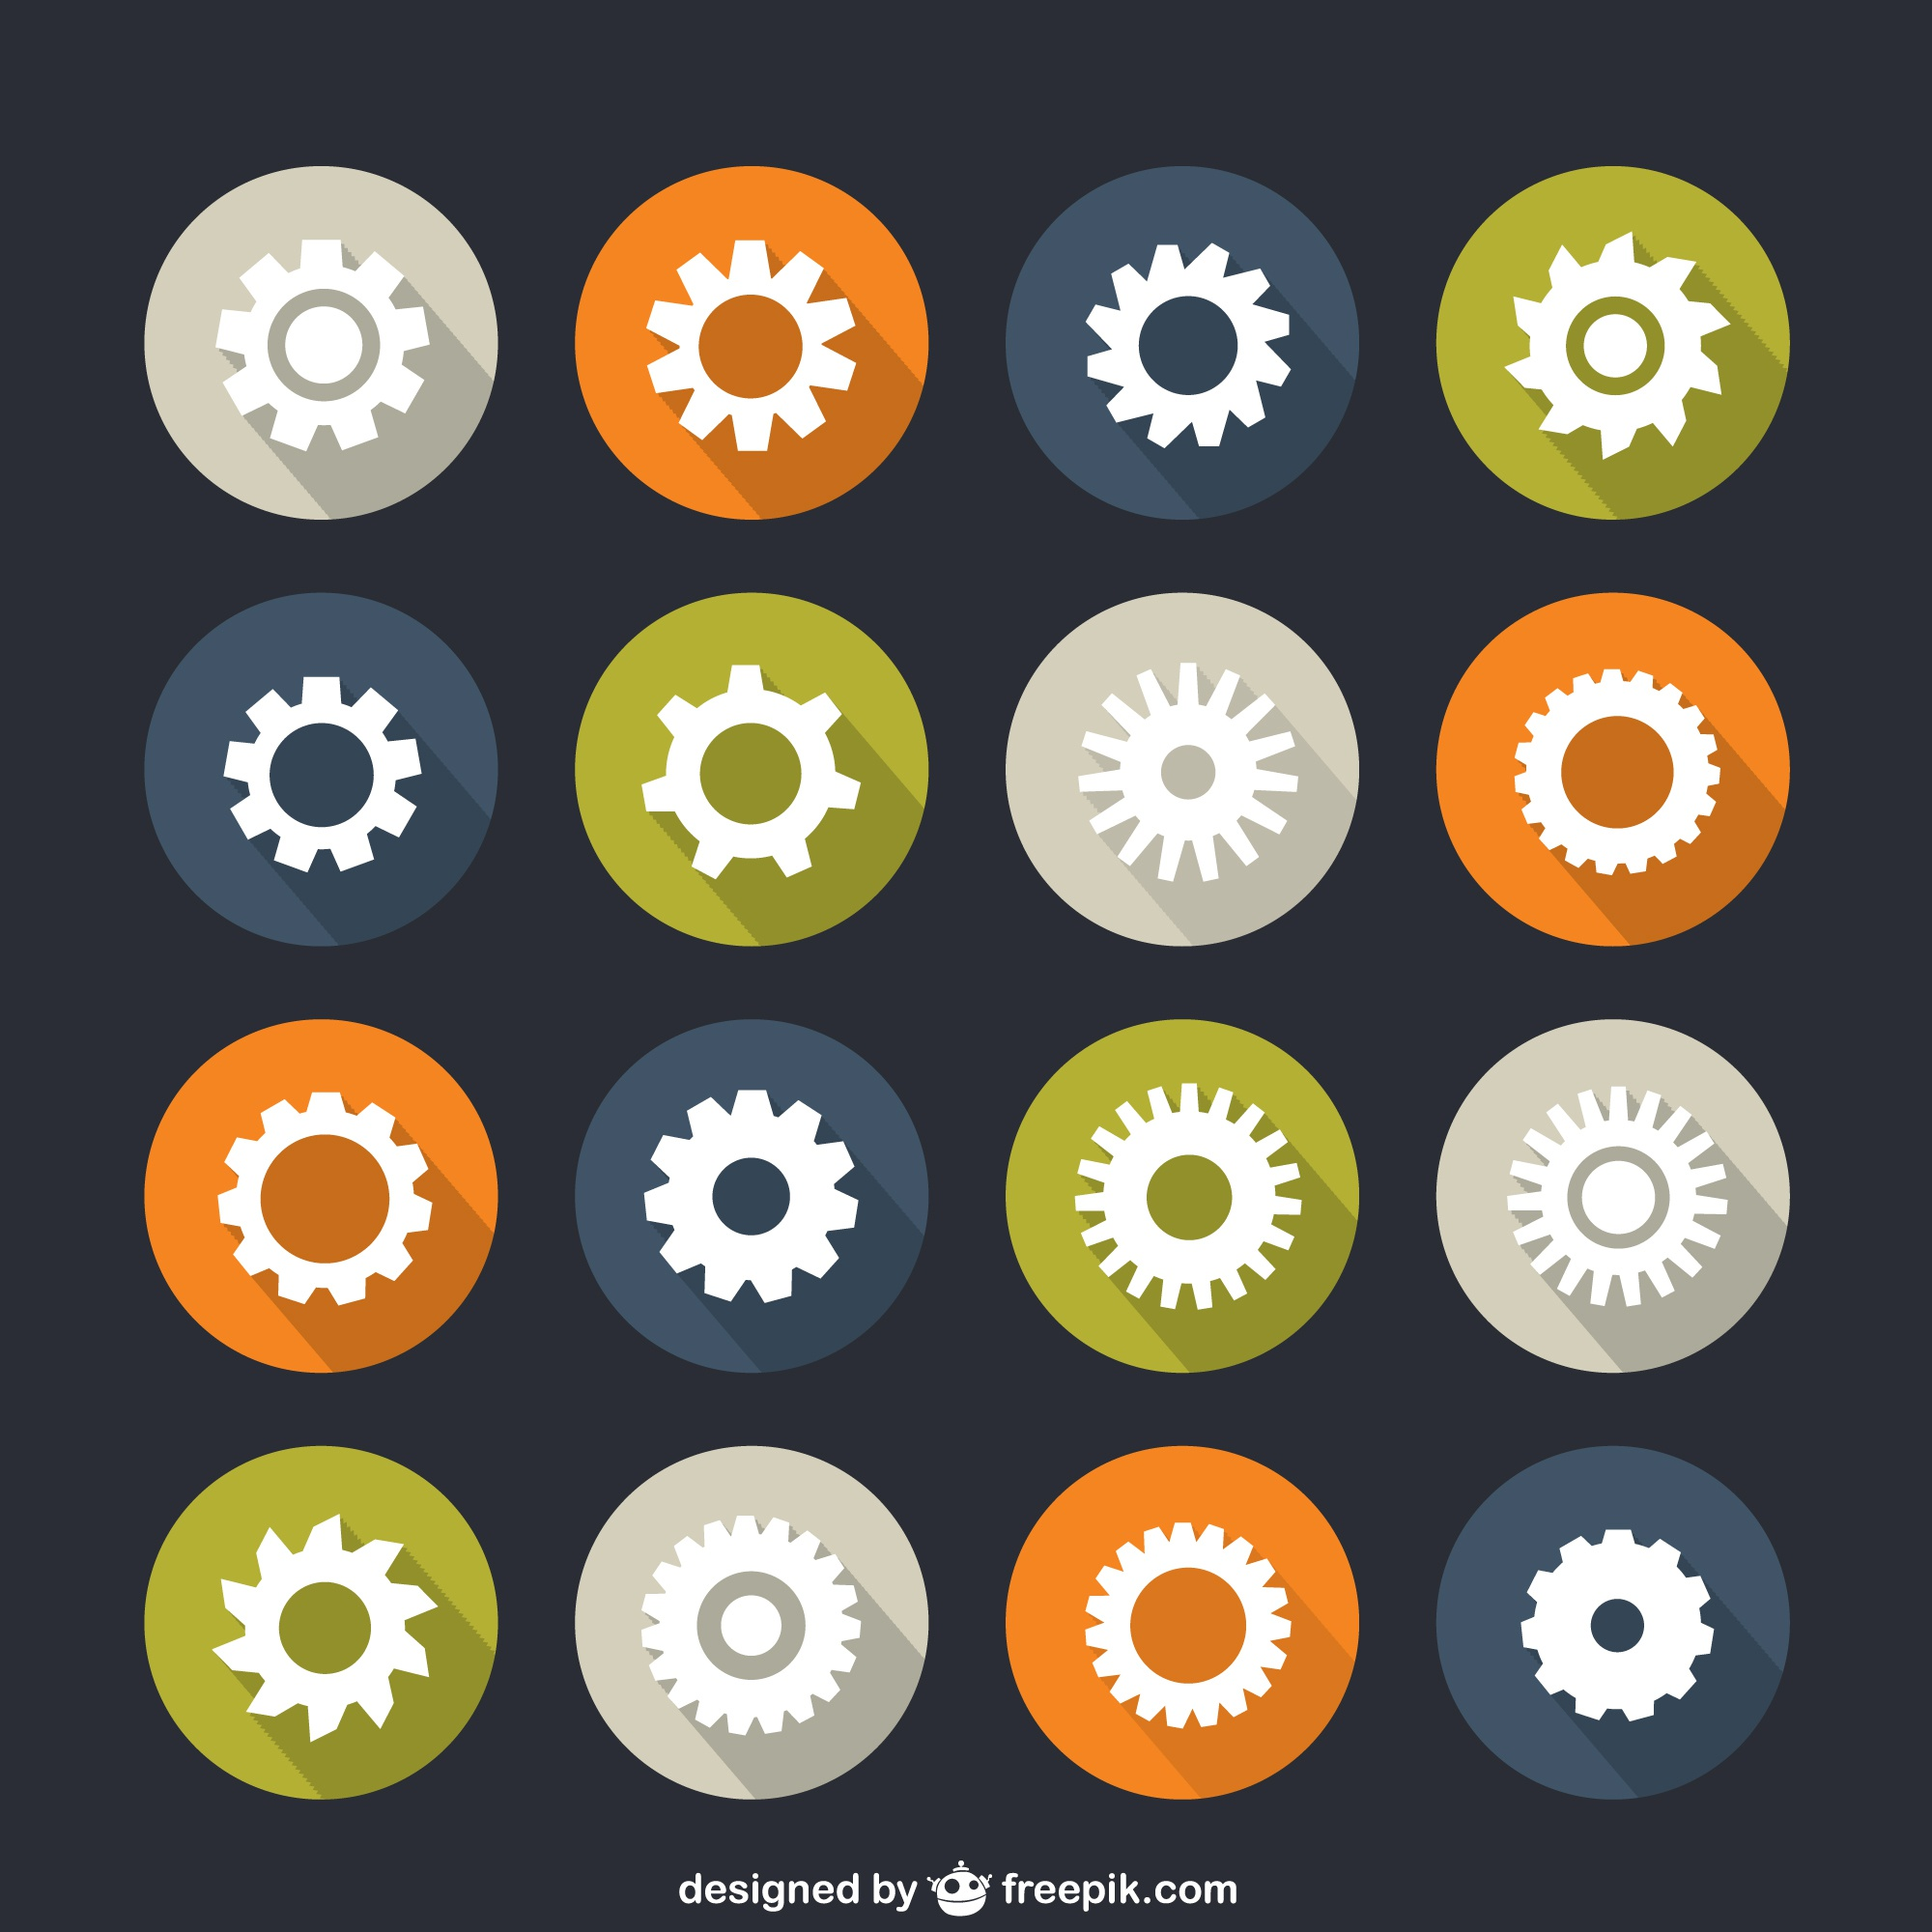 Icons of gears